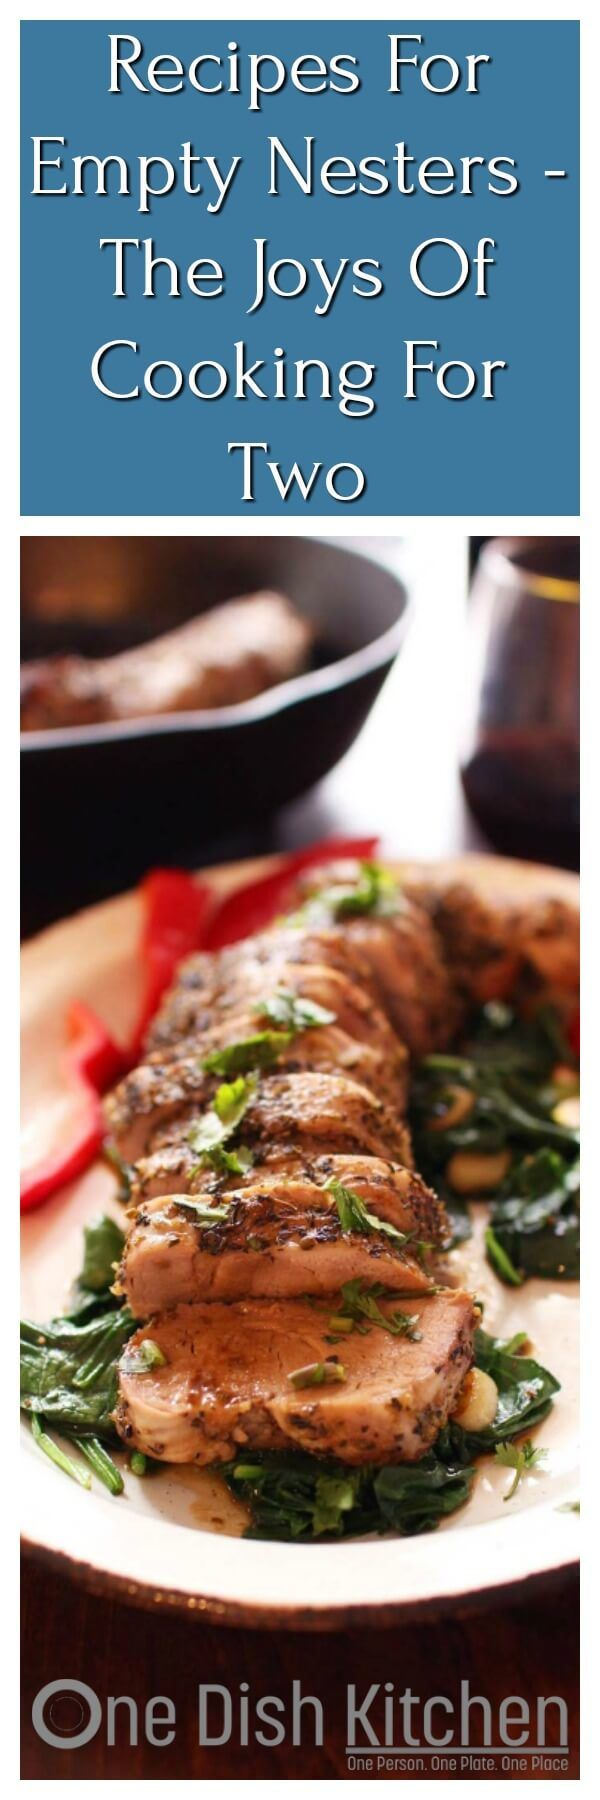 486 best houston food blogs images on pinterest bass guitars eat healthier and avoid leftovers with these 20 delicious recipes for empty nesters small batch breakfast dinner and dessert recipes along with small forumfinder Images